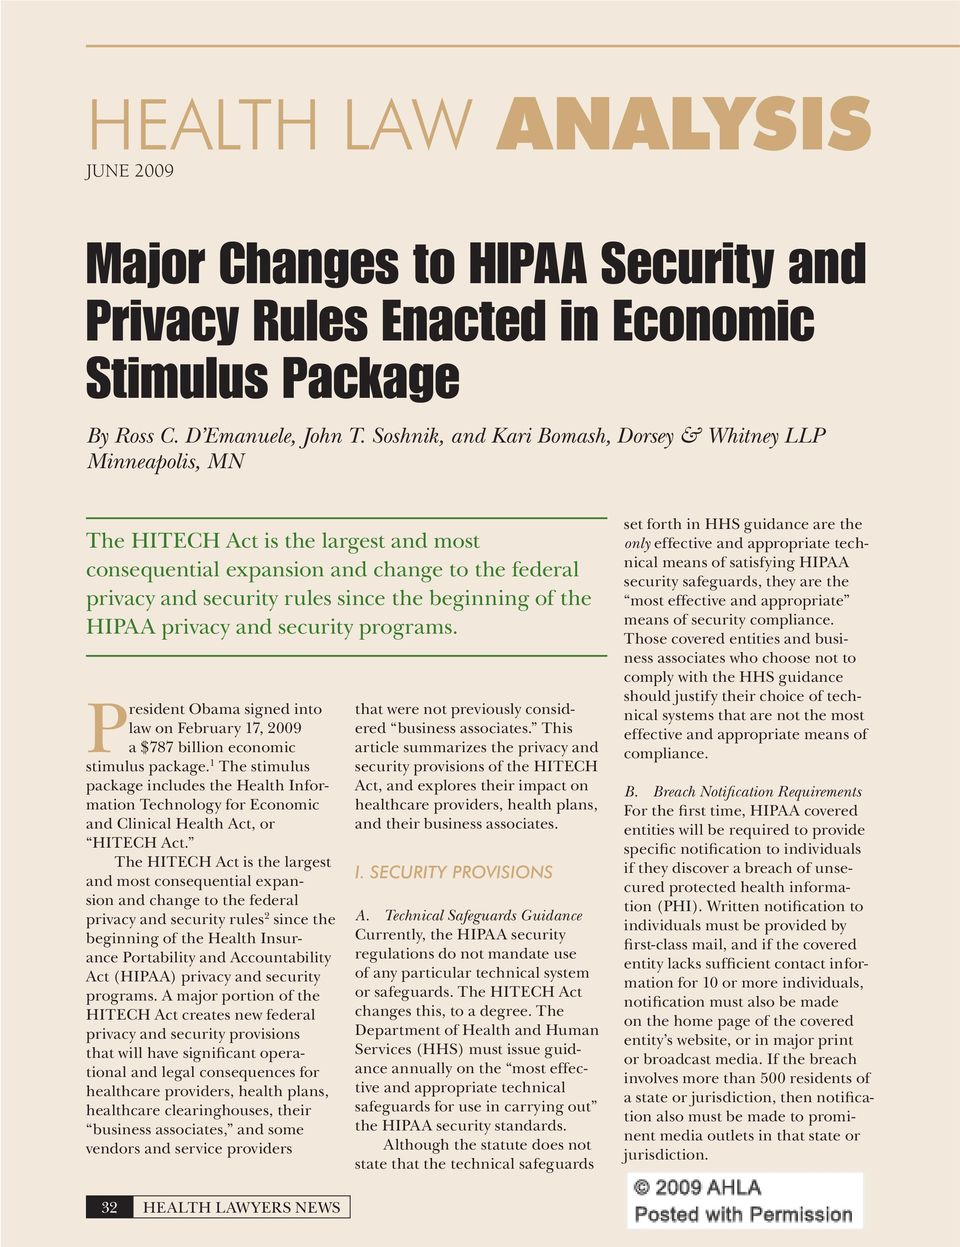 of the HIPAA privacy and security programs. President Obama signed into law on February 17, 2009 a $787 billion economic stimulus package.